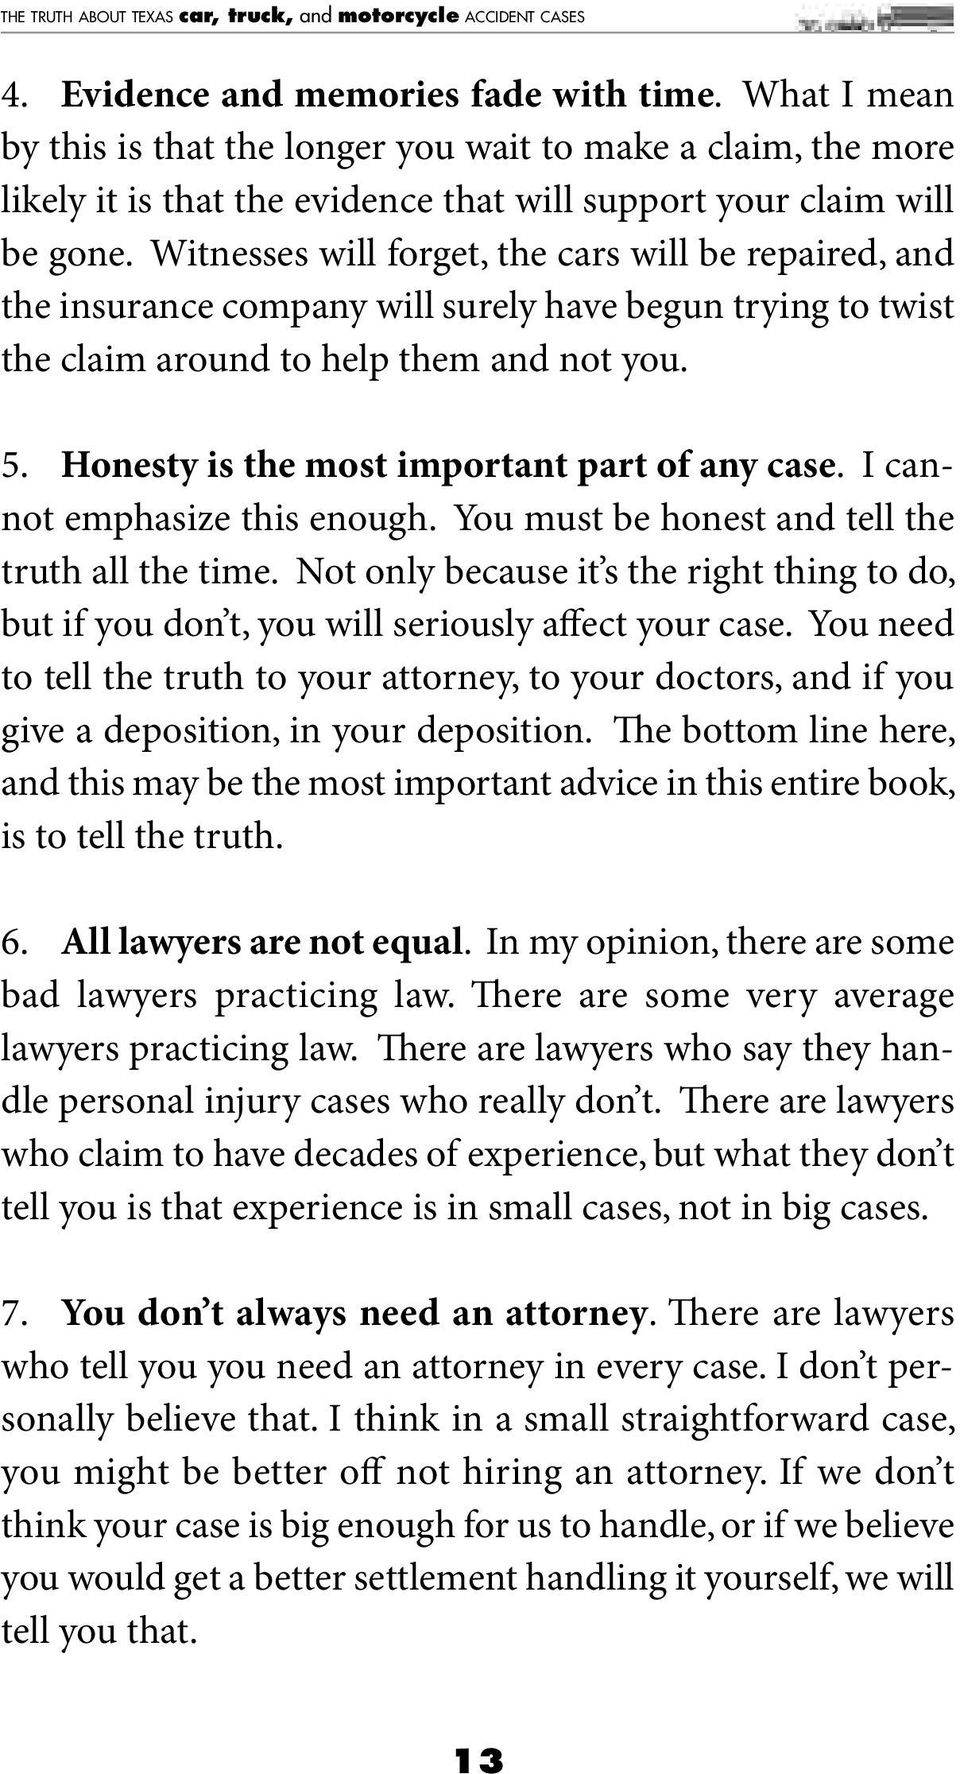 Honesty is the most important part of any case. I cannot emphasize this enough. You must be honest and tell the truth all the time.